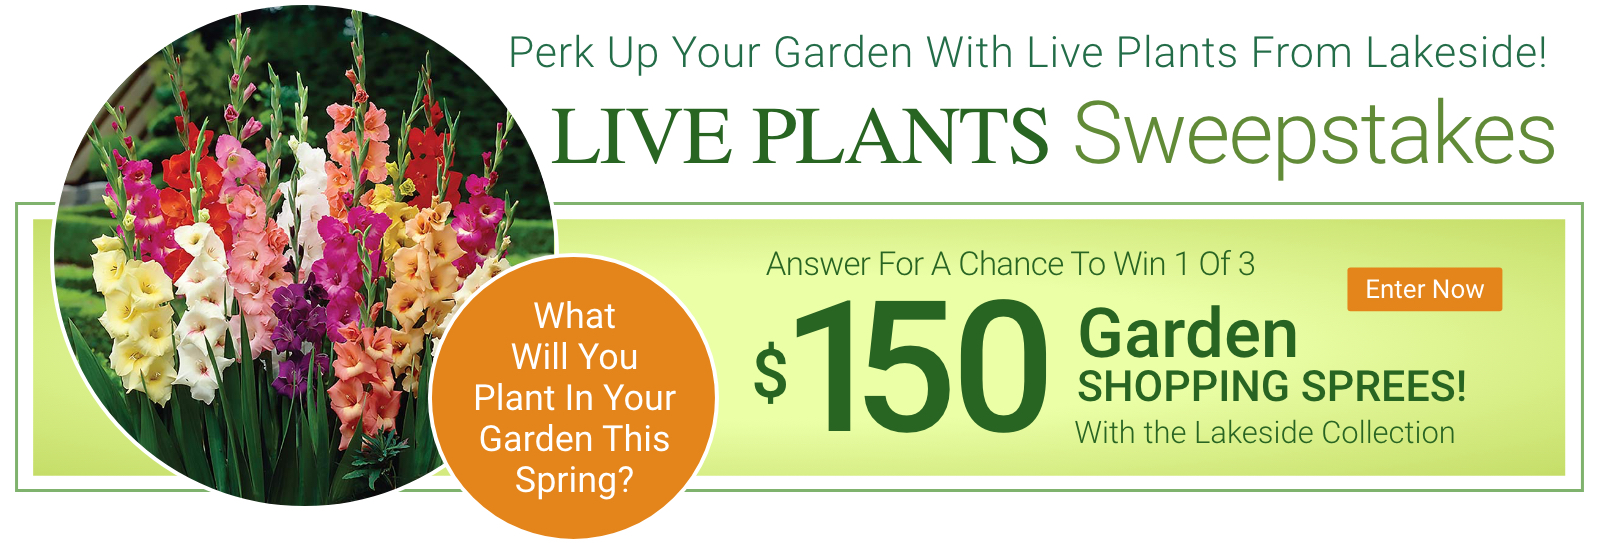 Live Plants Sweepstakes. Answer for a chance to win 1 of 3 $150 Garden Shopping Sprees. Enter Now.